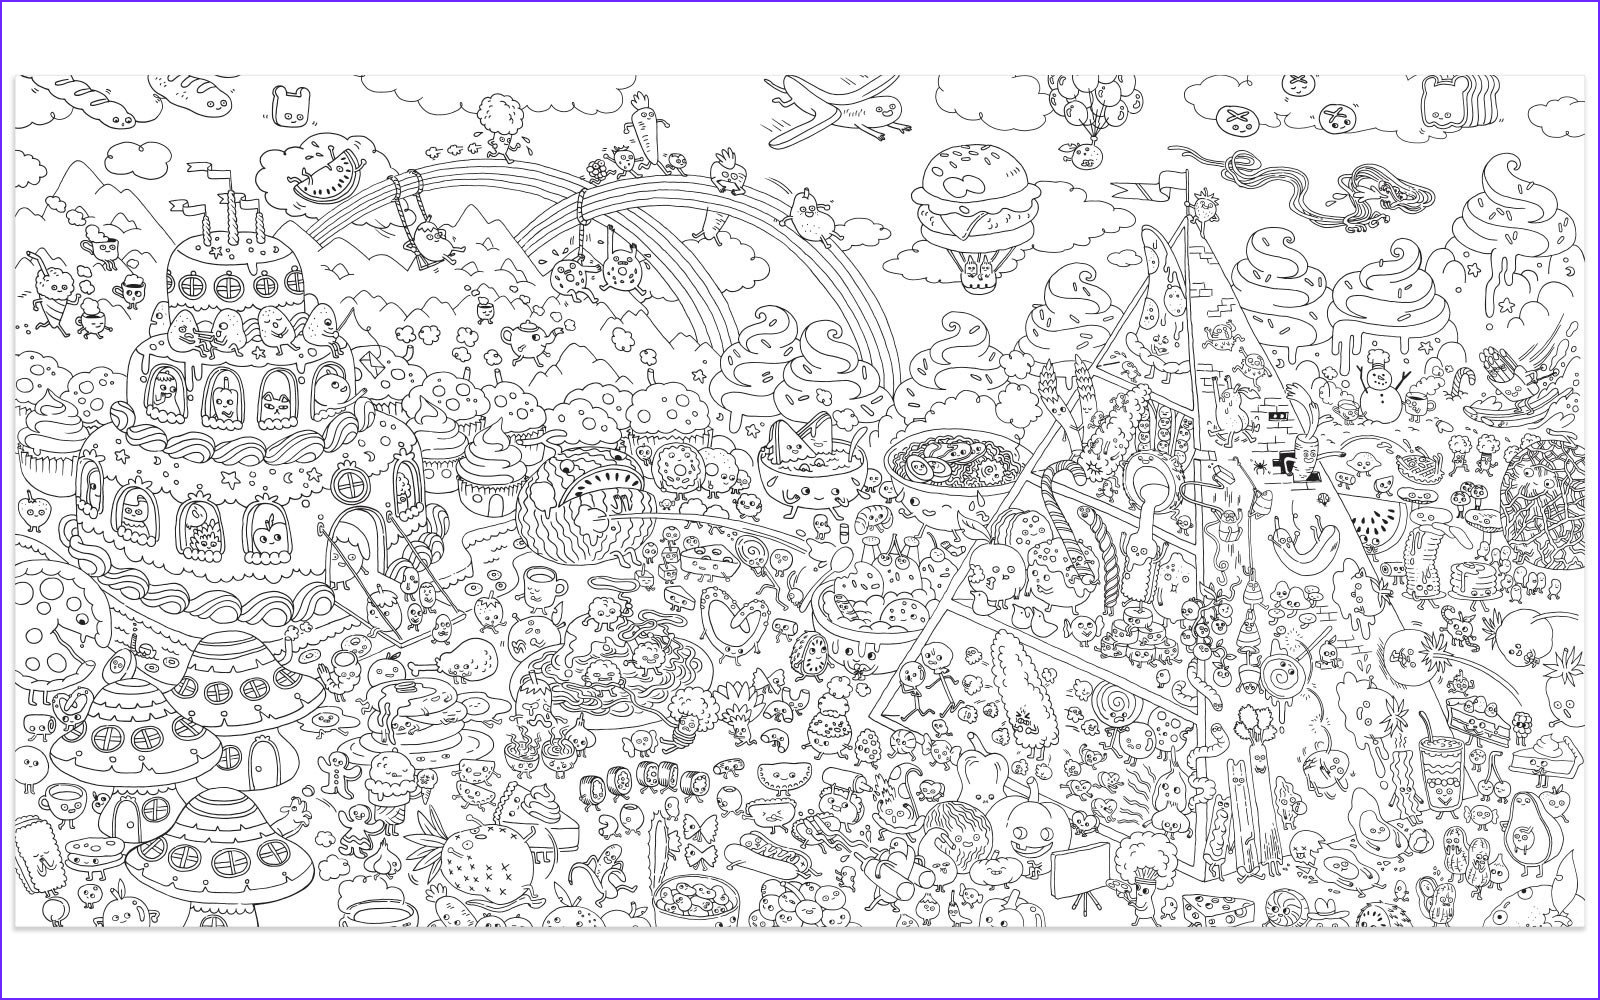 Giant Coloring Poster Beautiful Image 1000 Images About Babies & Kids Thing On Pinterest